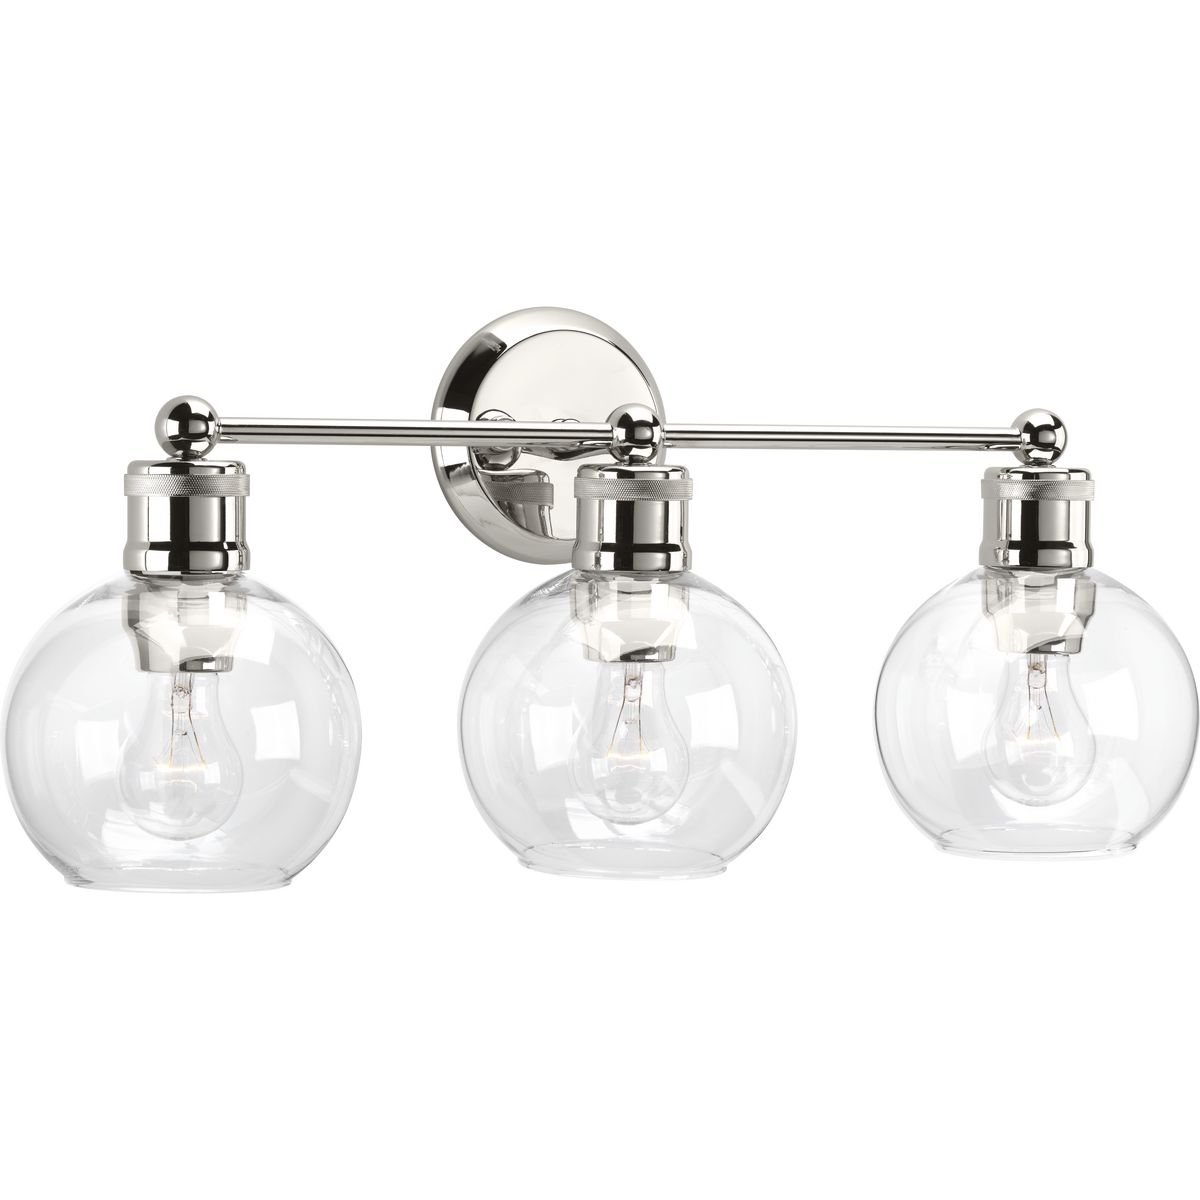 Progress Lighting P300051-104 Hansford Polished Nickel Three-Light Bath & Vanity by Progress Lighting (Image #1)